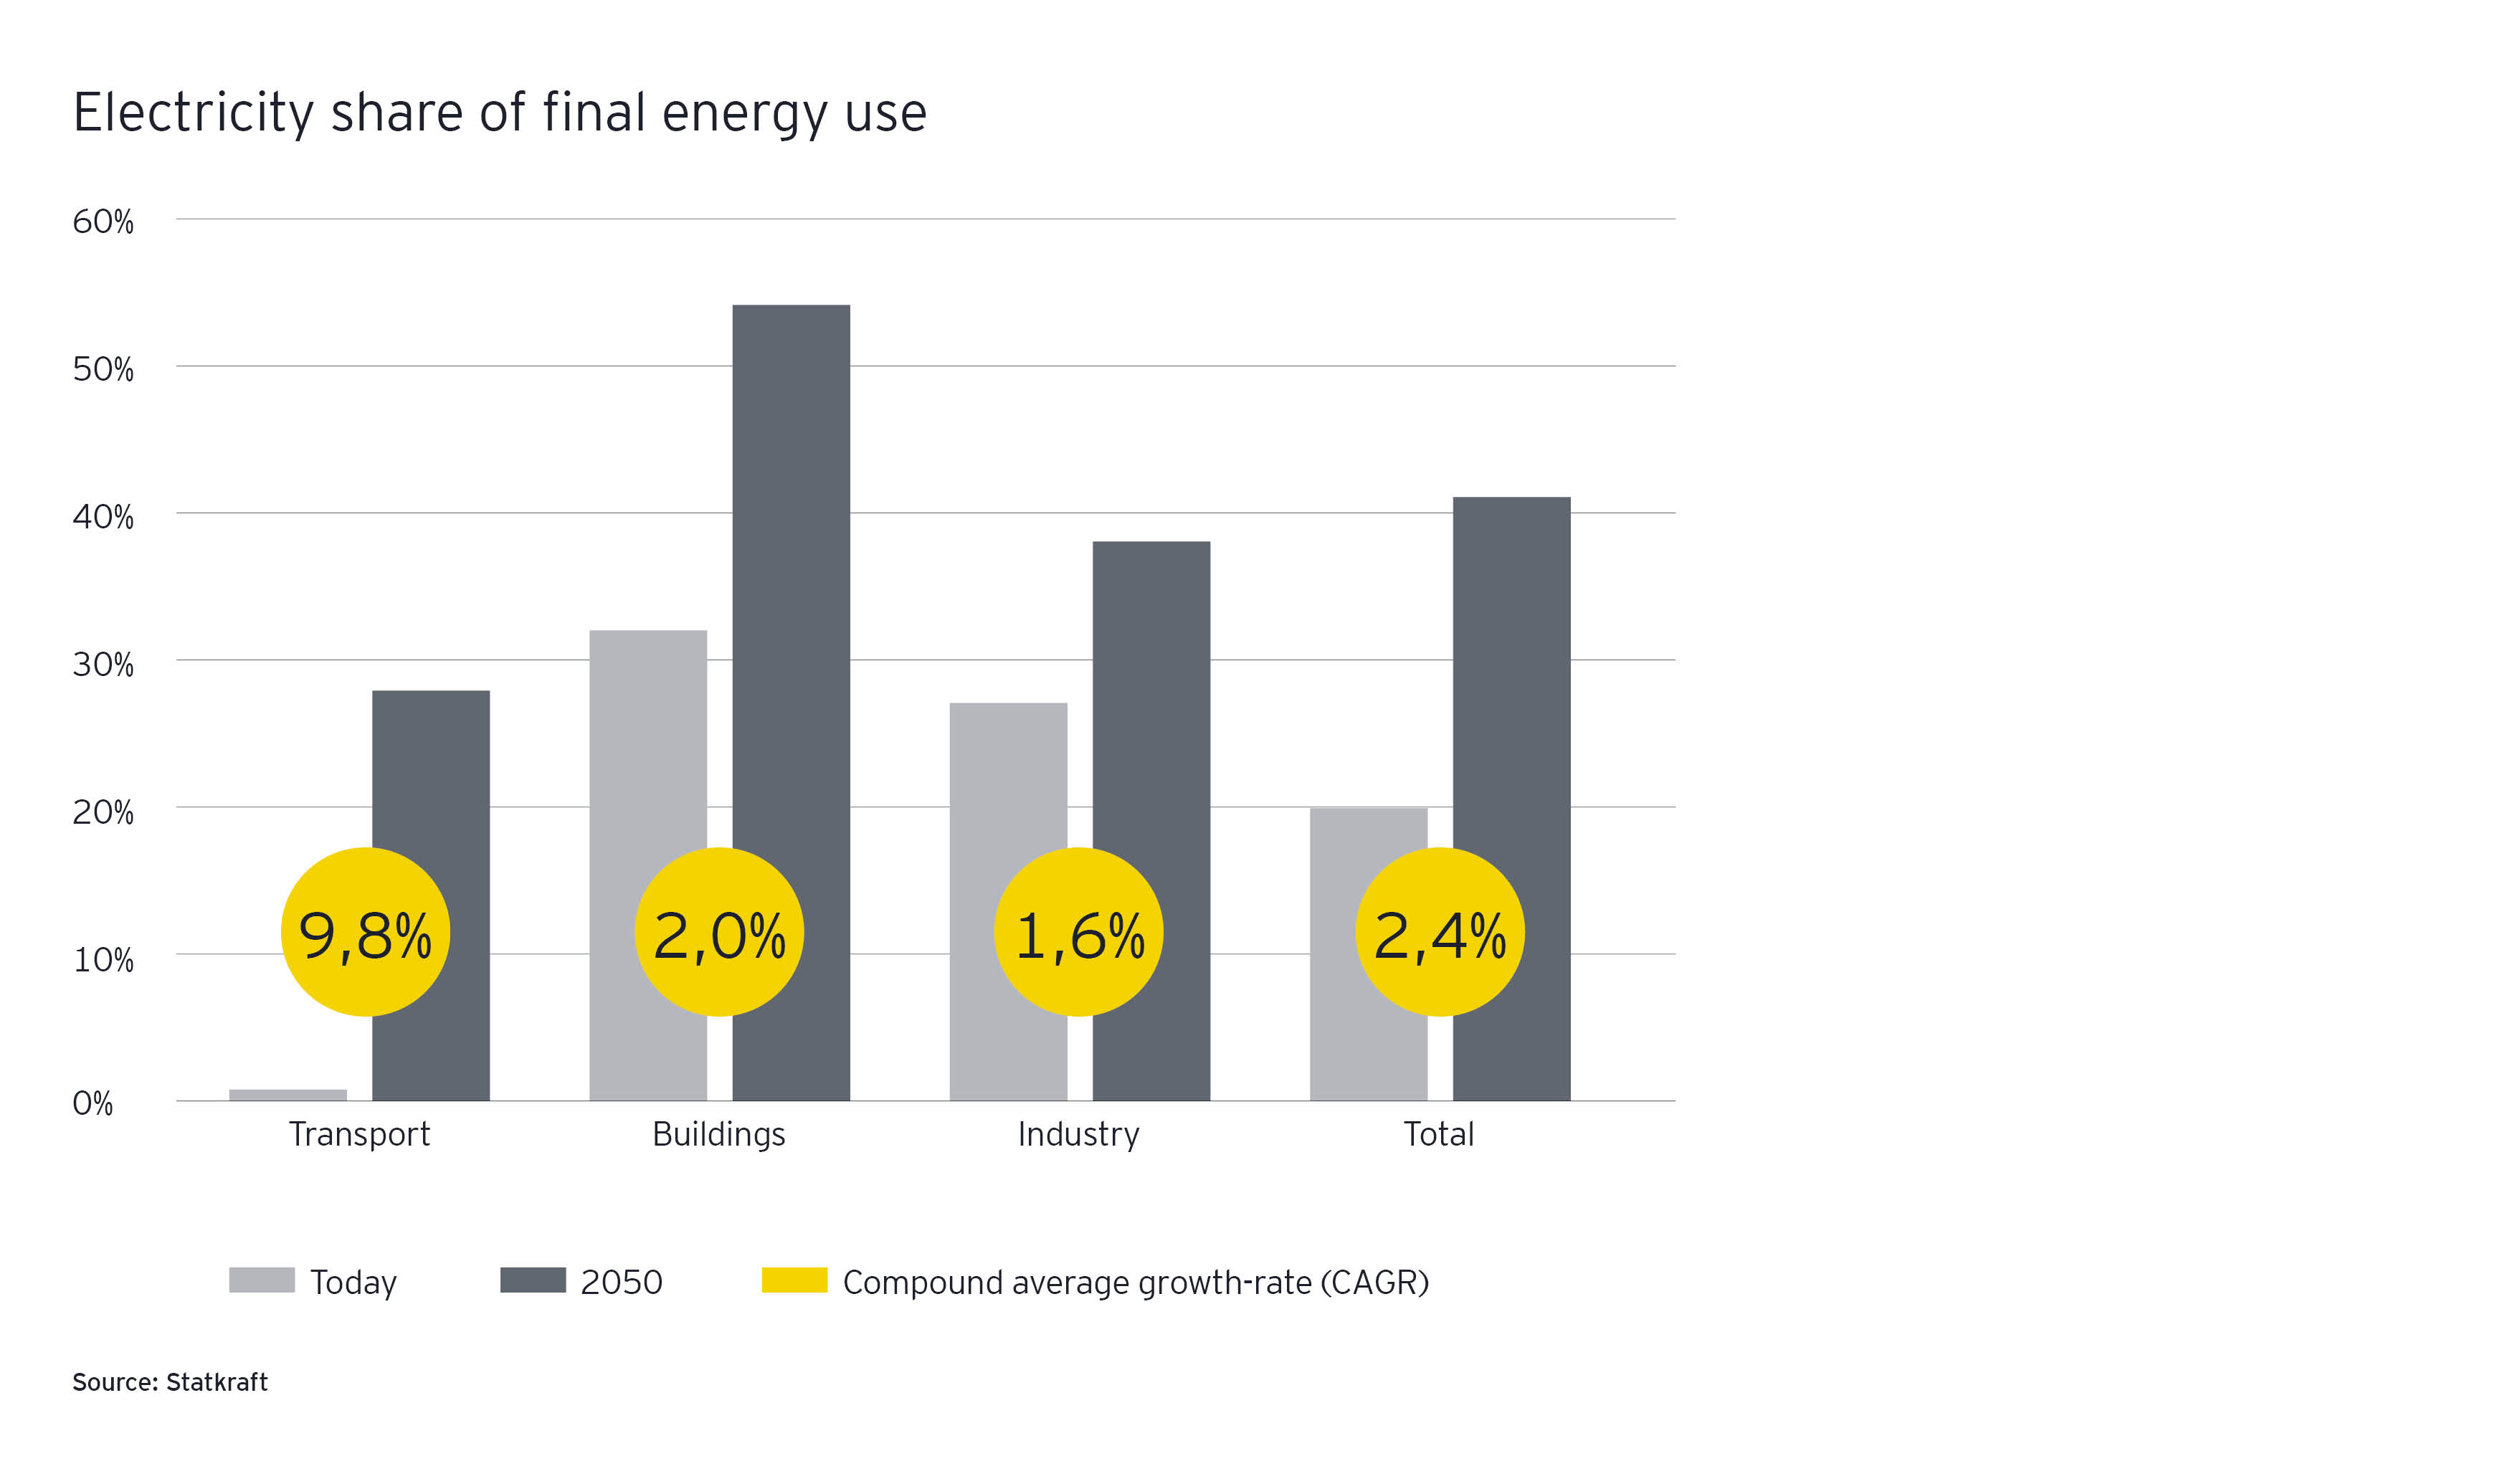 Electricity share of final energy use